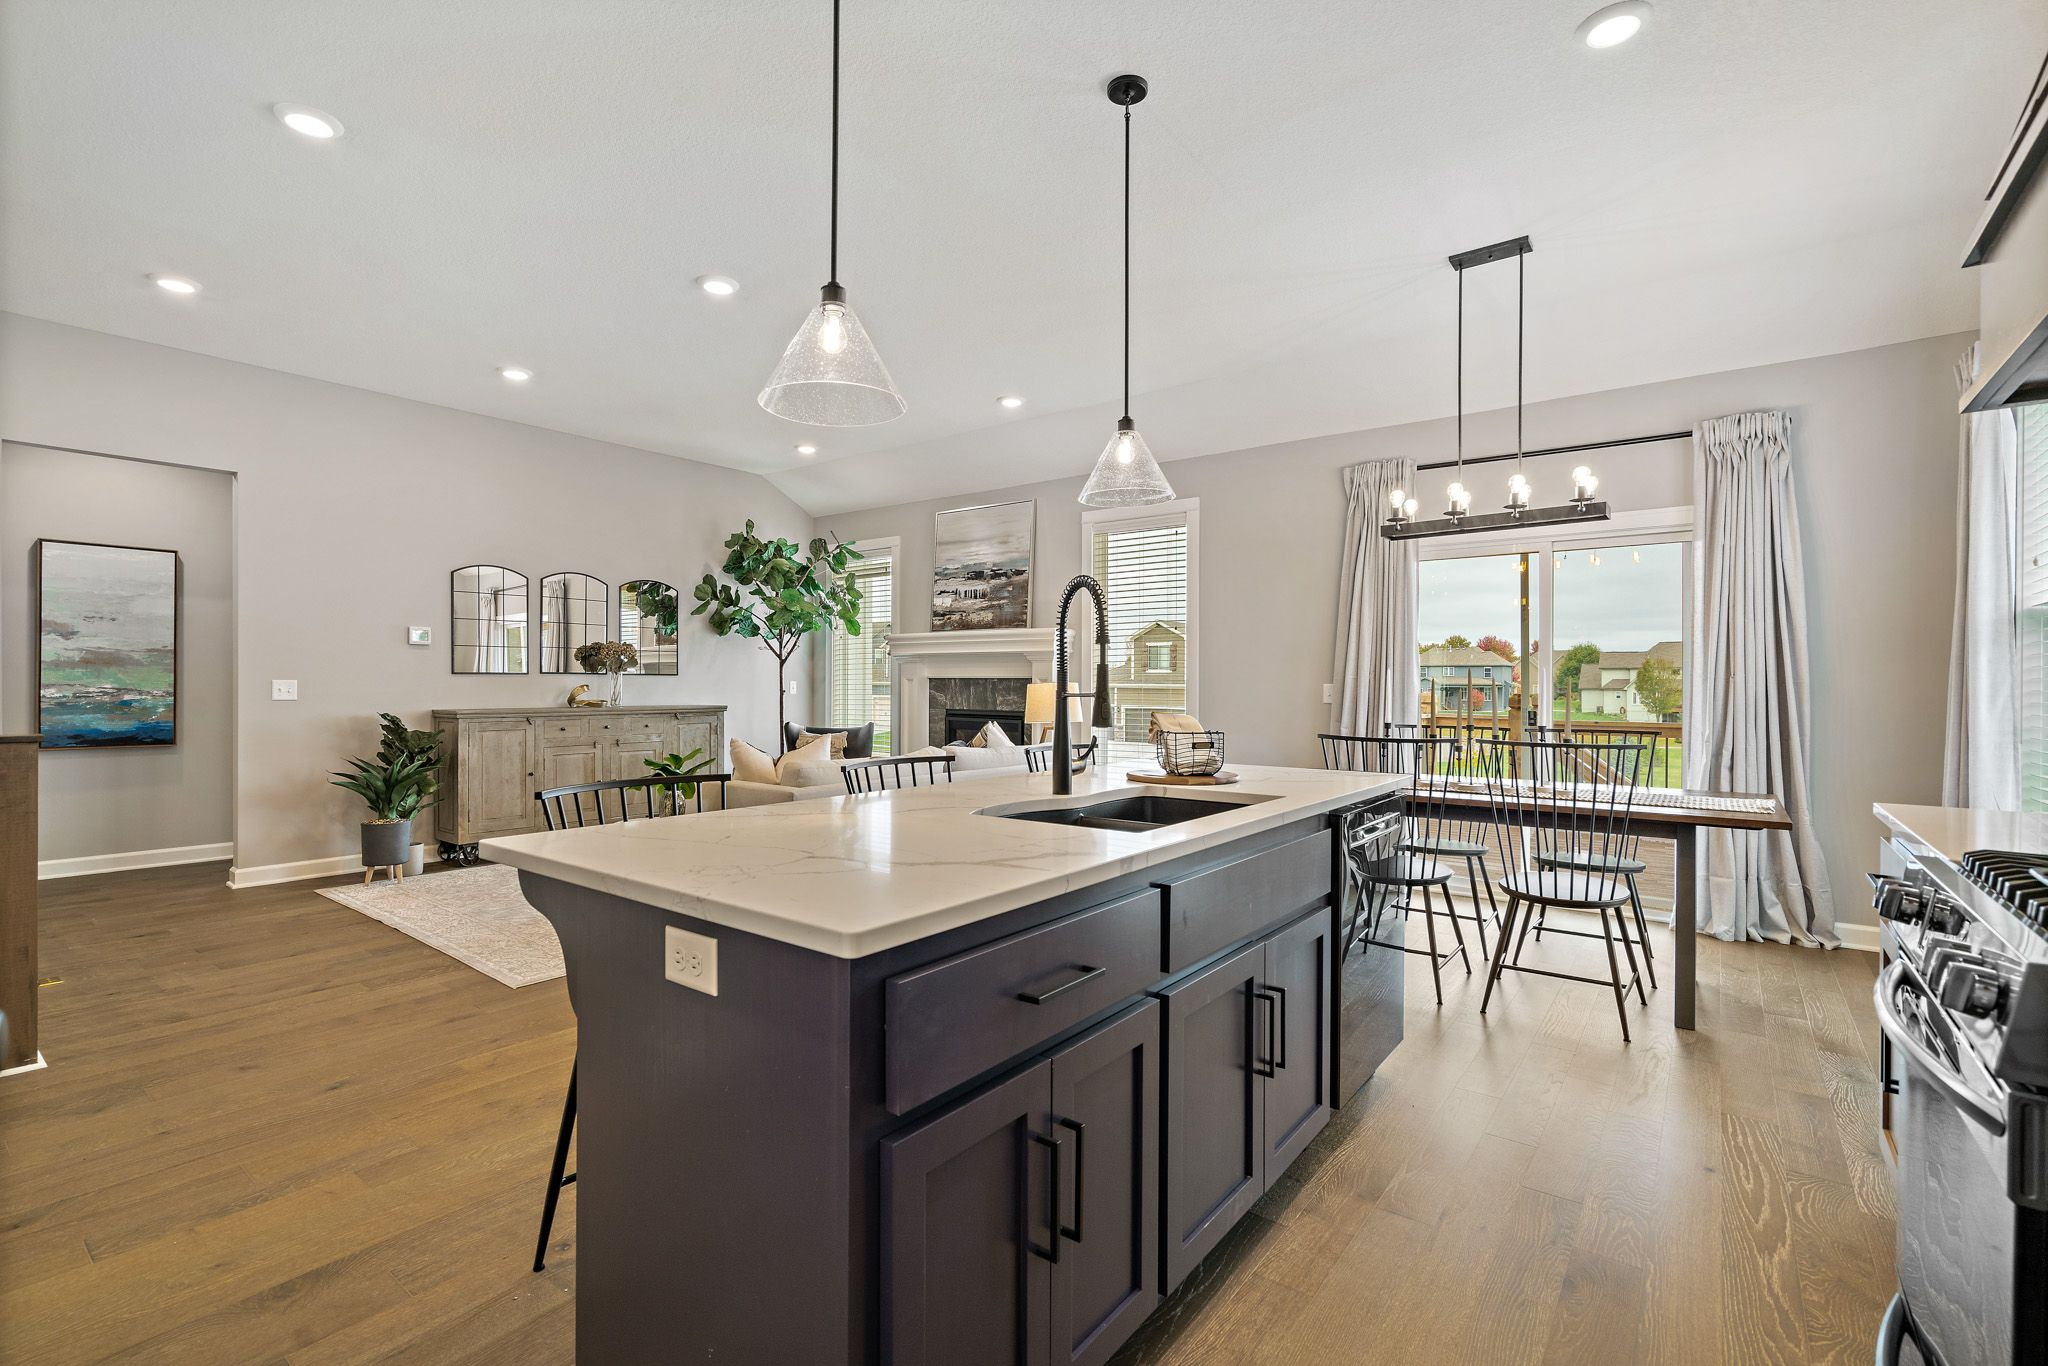 Kitchen featured in the Charlotte By Summit Homes in Kansas City, MO